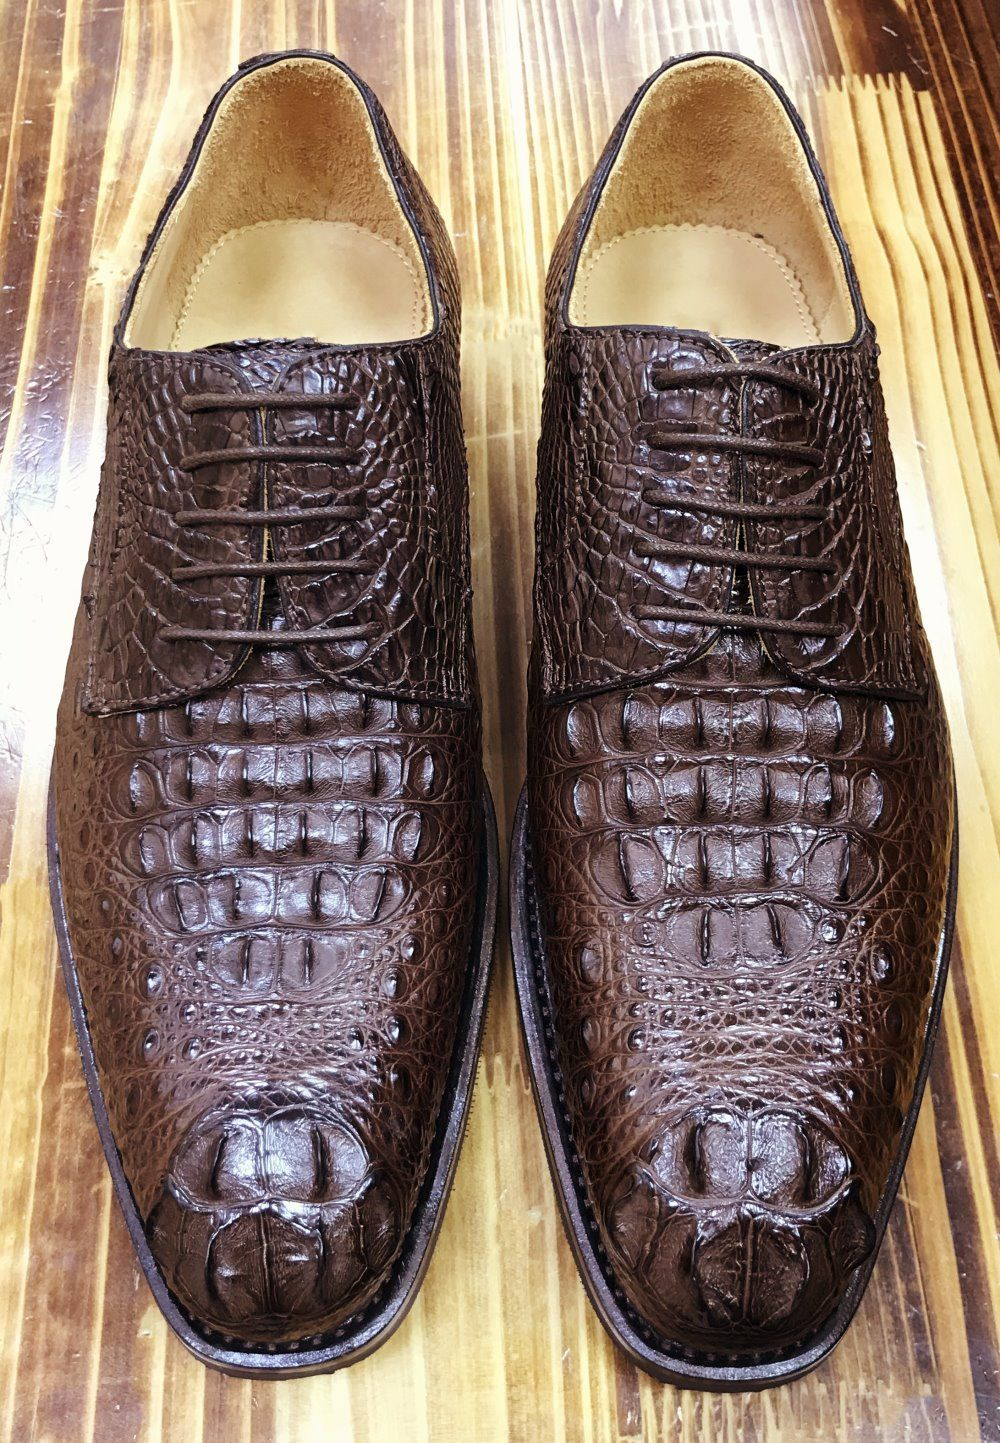 Alligator Shoes and Crocodile Shoes for